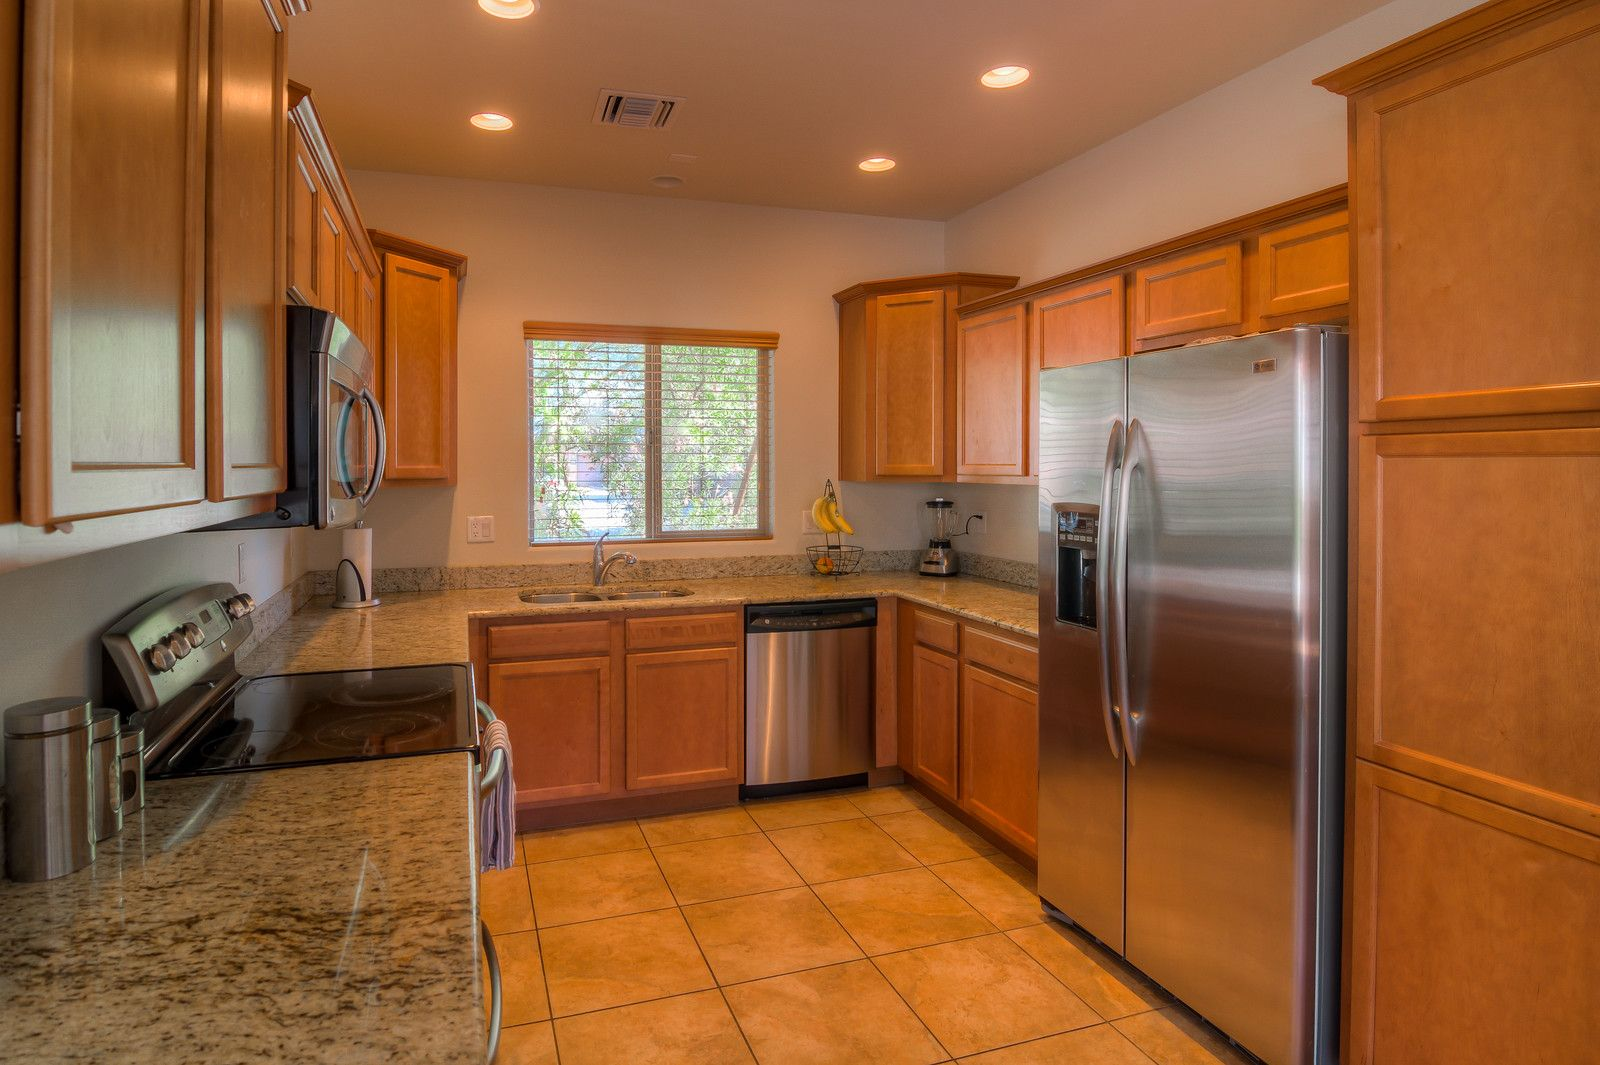 To learn more about this home for sale at e native rose trail